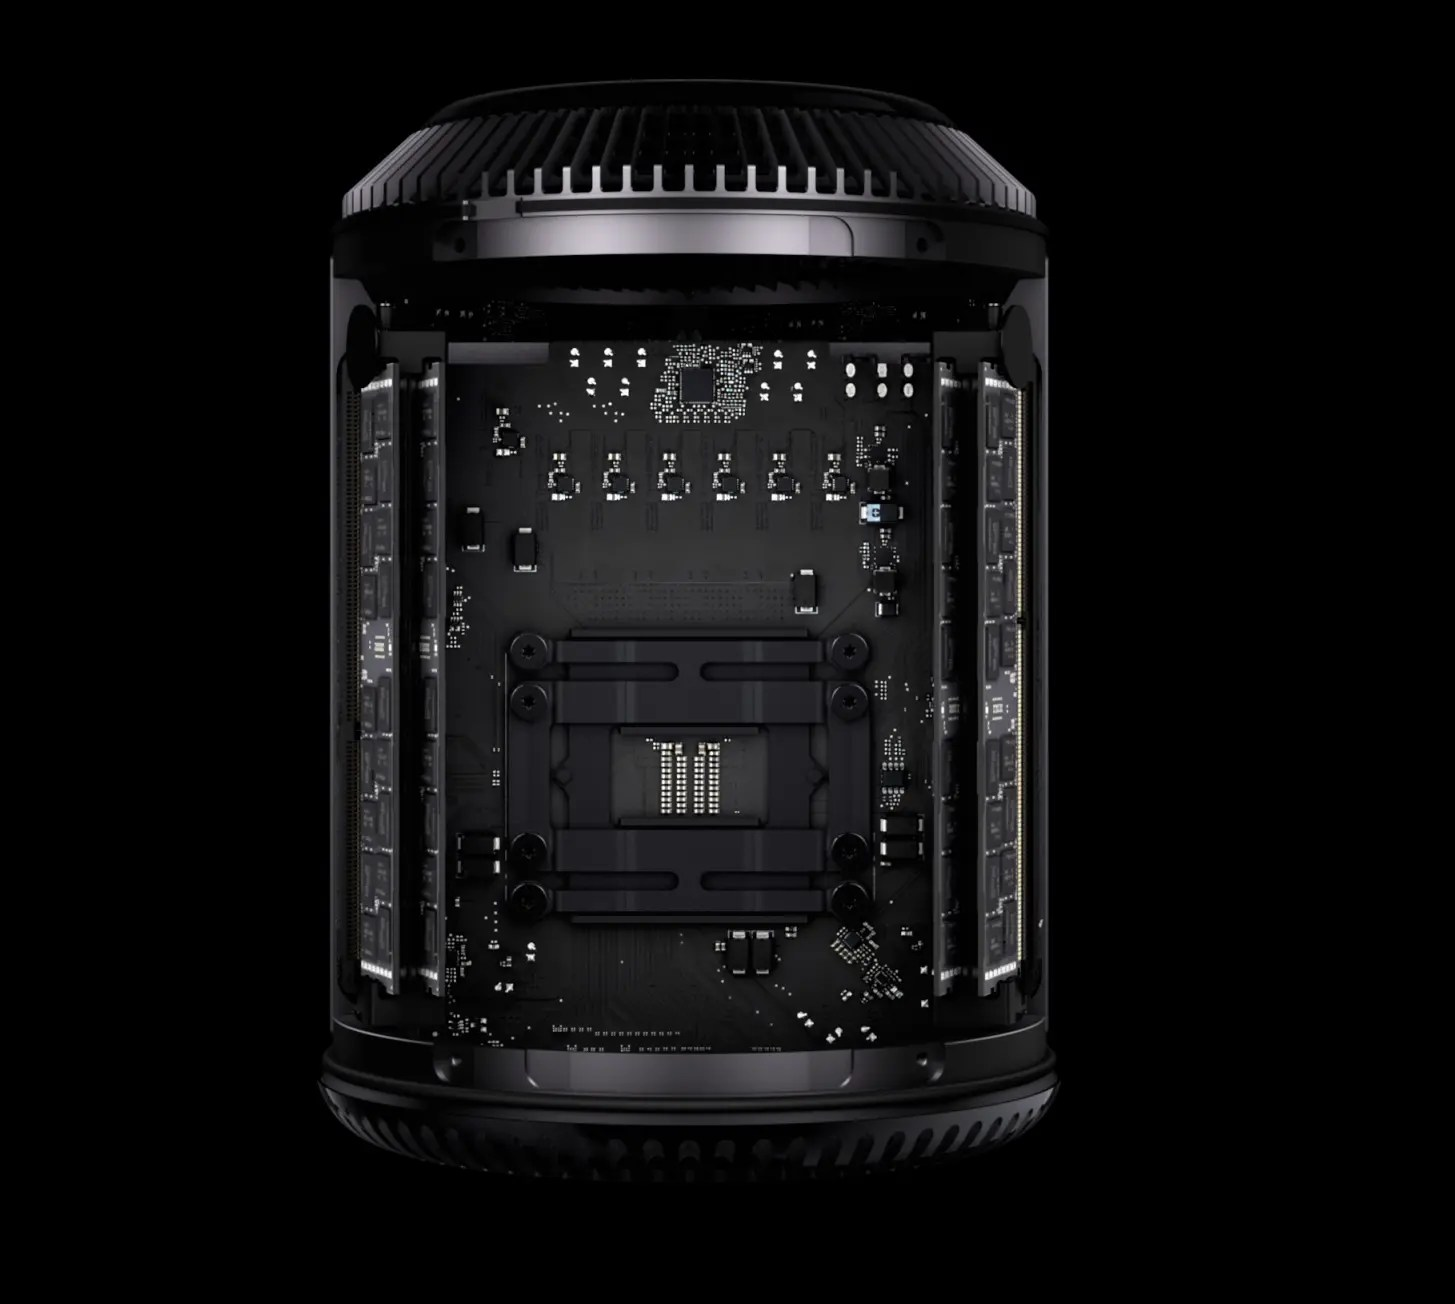 Hd Wallpapers For Mac Pro Apple Announces New Mac Pro And Macbook Air At Wwdc 2013